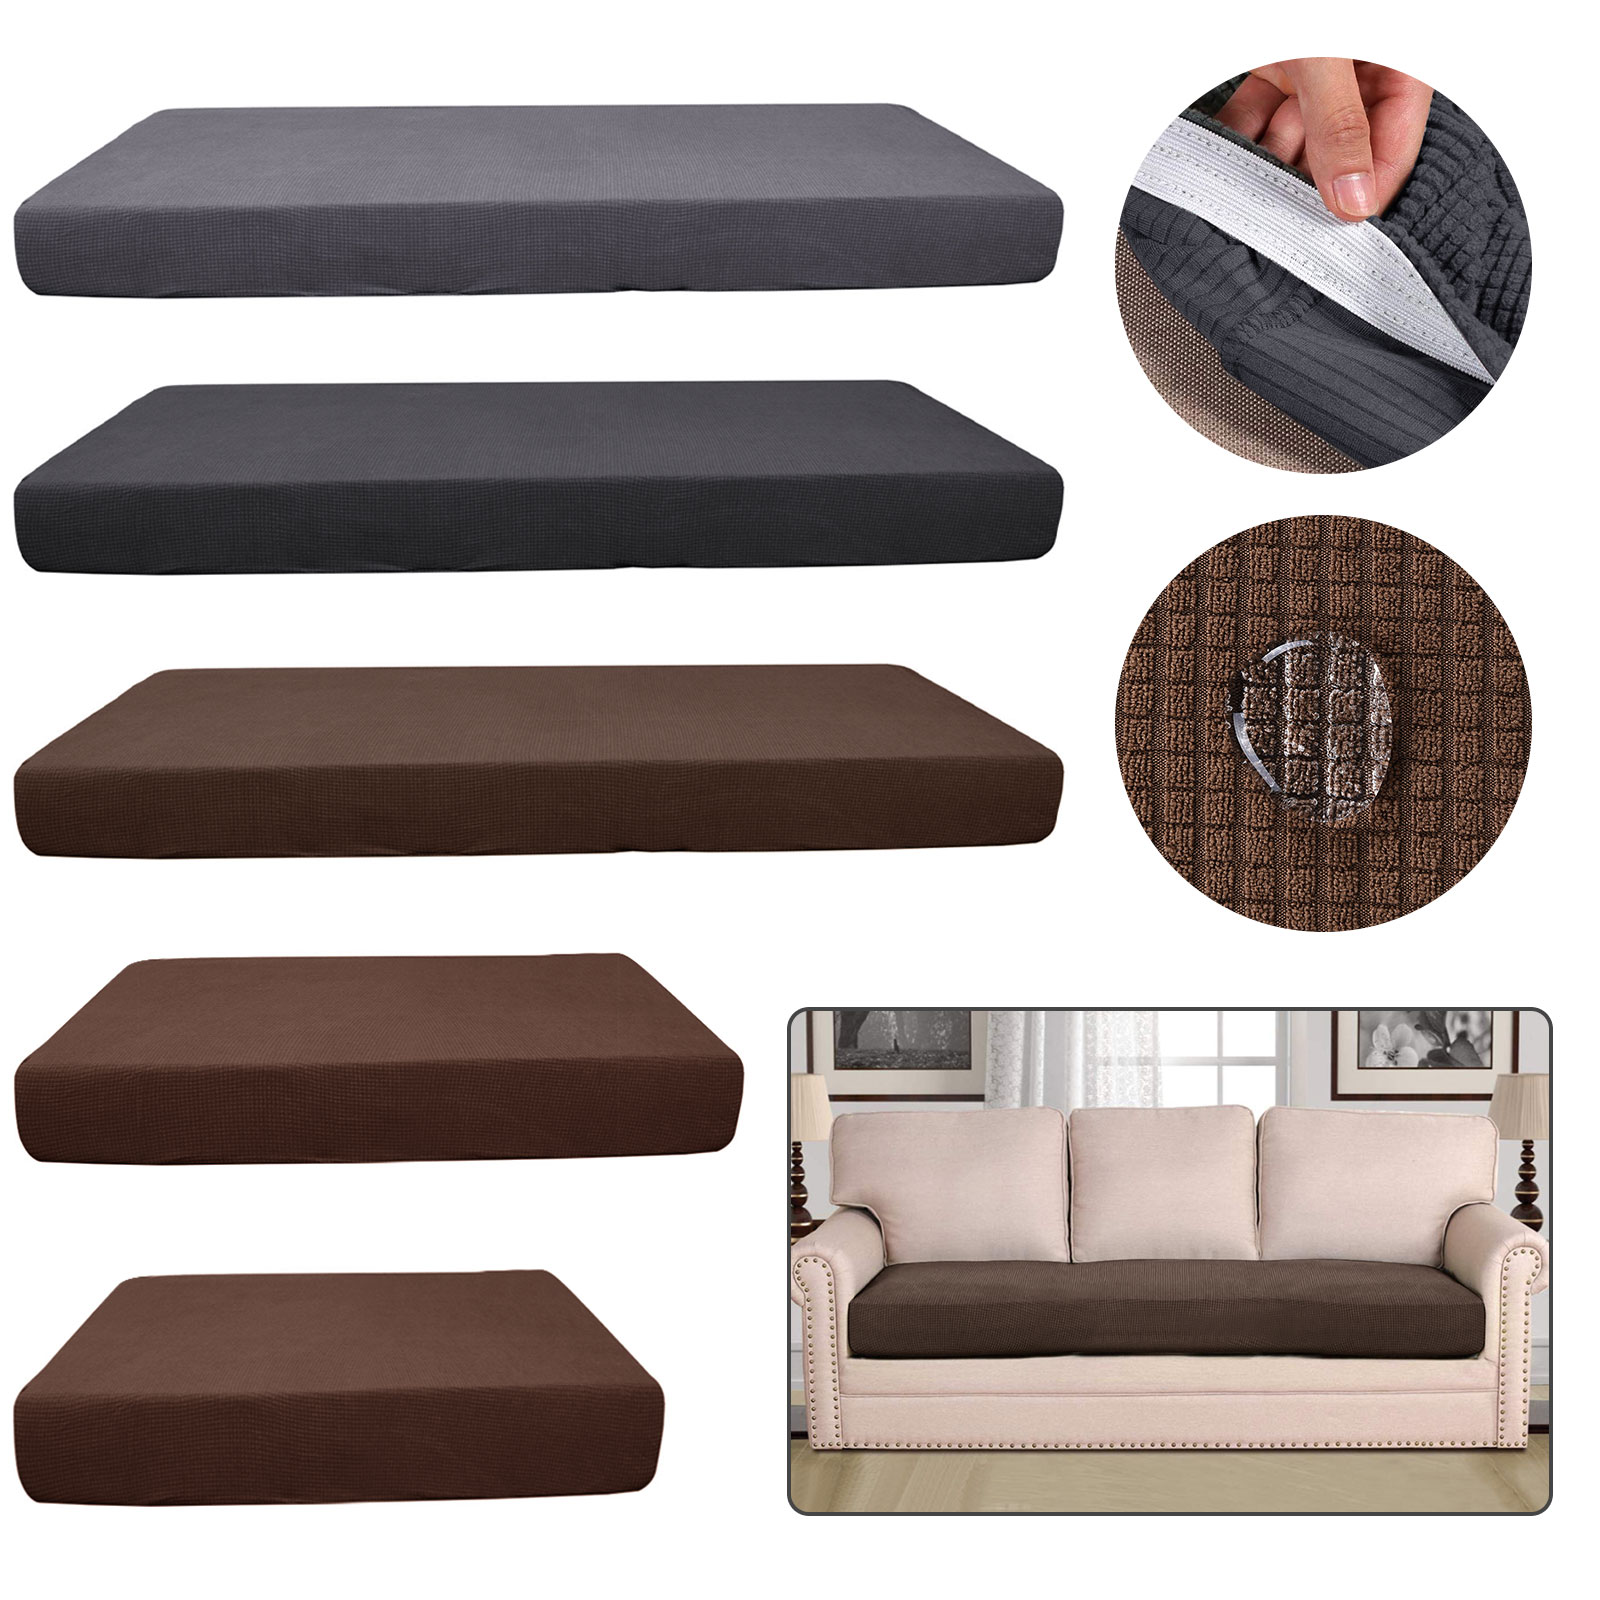 Stretchy 1 3 Sofa Seats Square Cushion Cover Couch Slip Covers